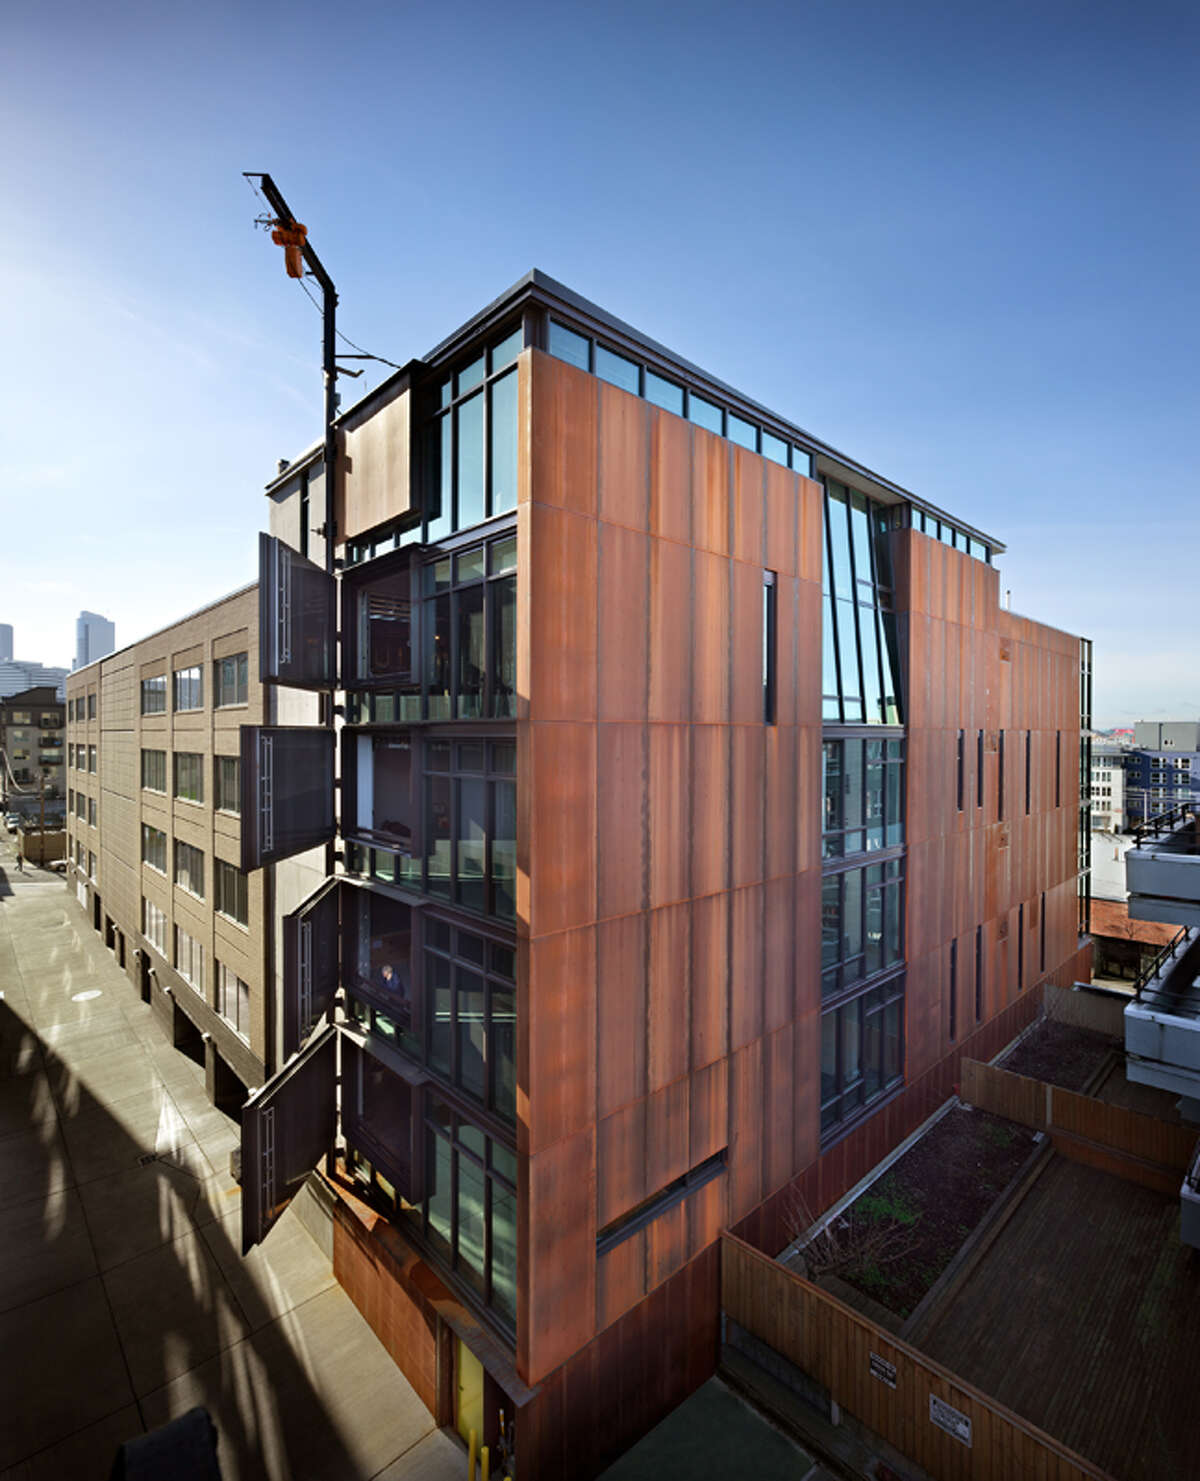 Each of Art Stable's five units has a large steel-clad door on the alley-facing side. A crane on the roof can lift large objects from the alley into each unit through the door. Unit 600, a 2,237-square-foot shell, is listed for $1.175 million.